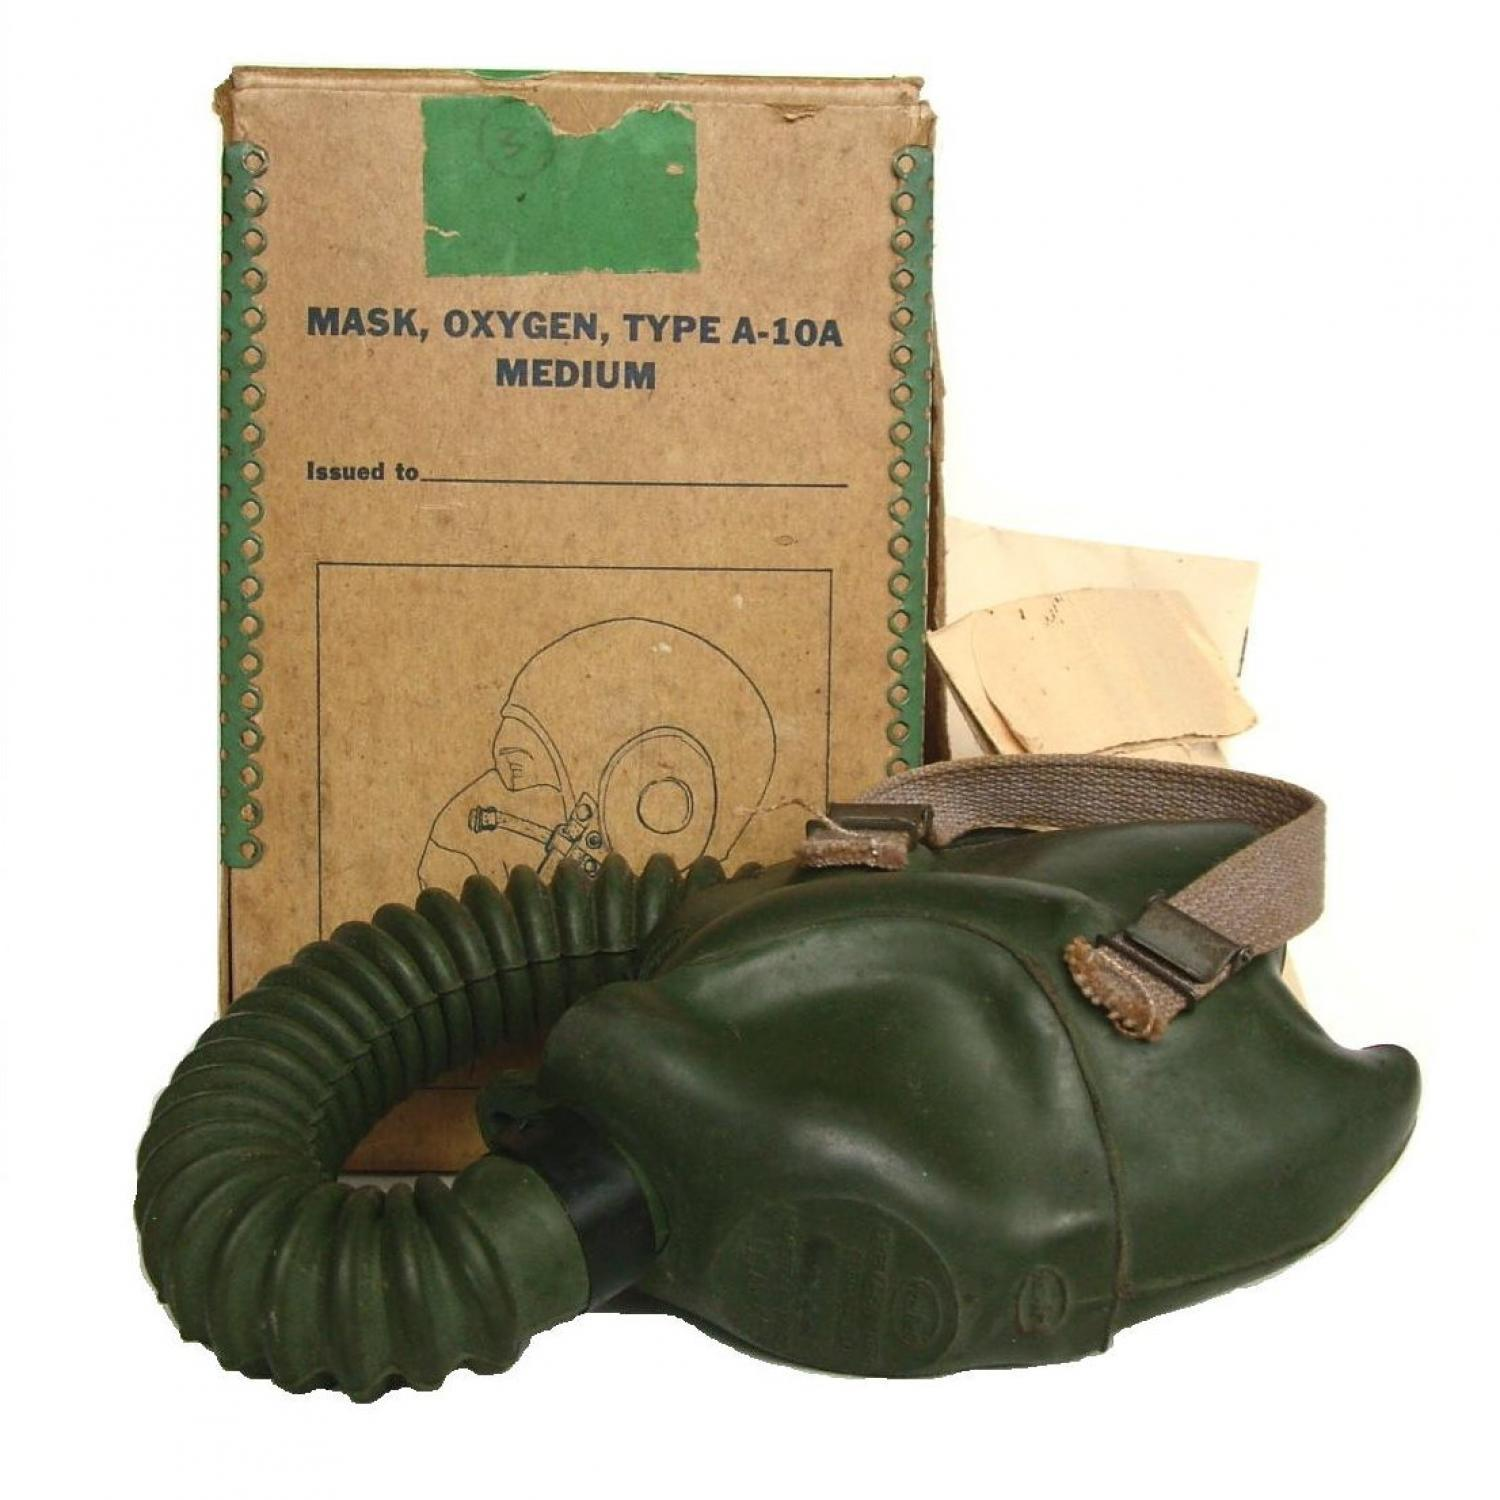 USAAF A-10A Oxygen Mask, Boxed